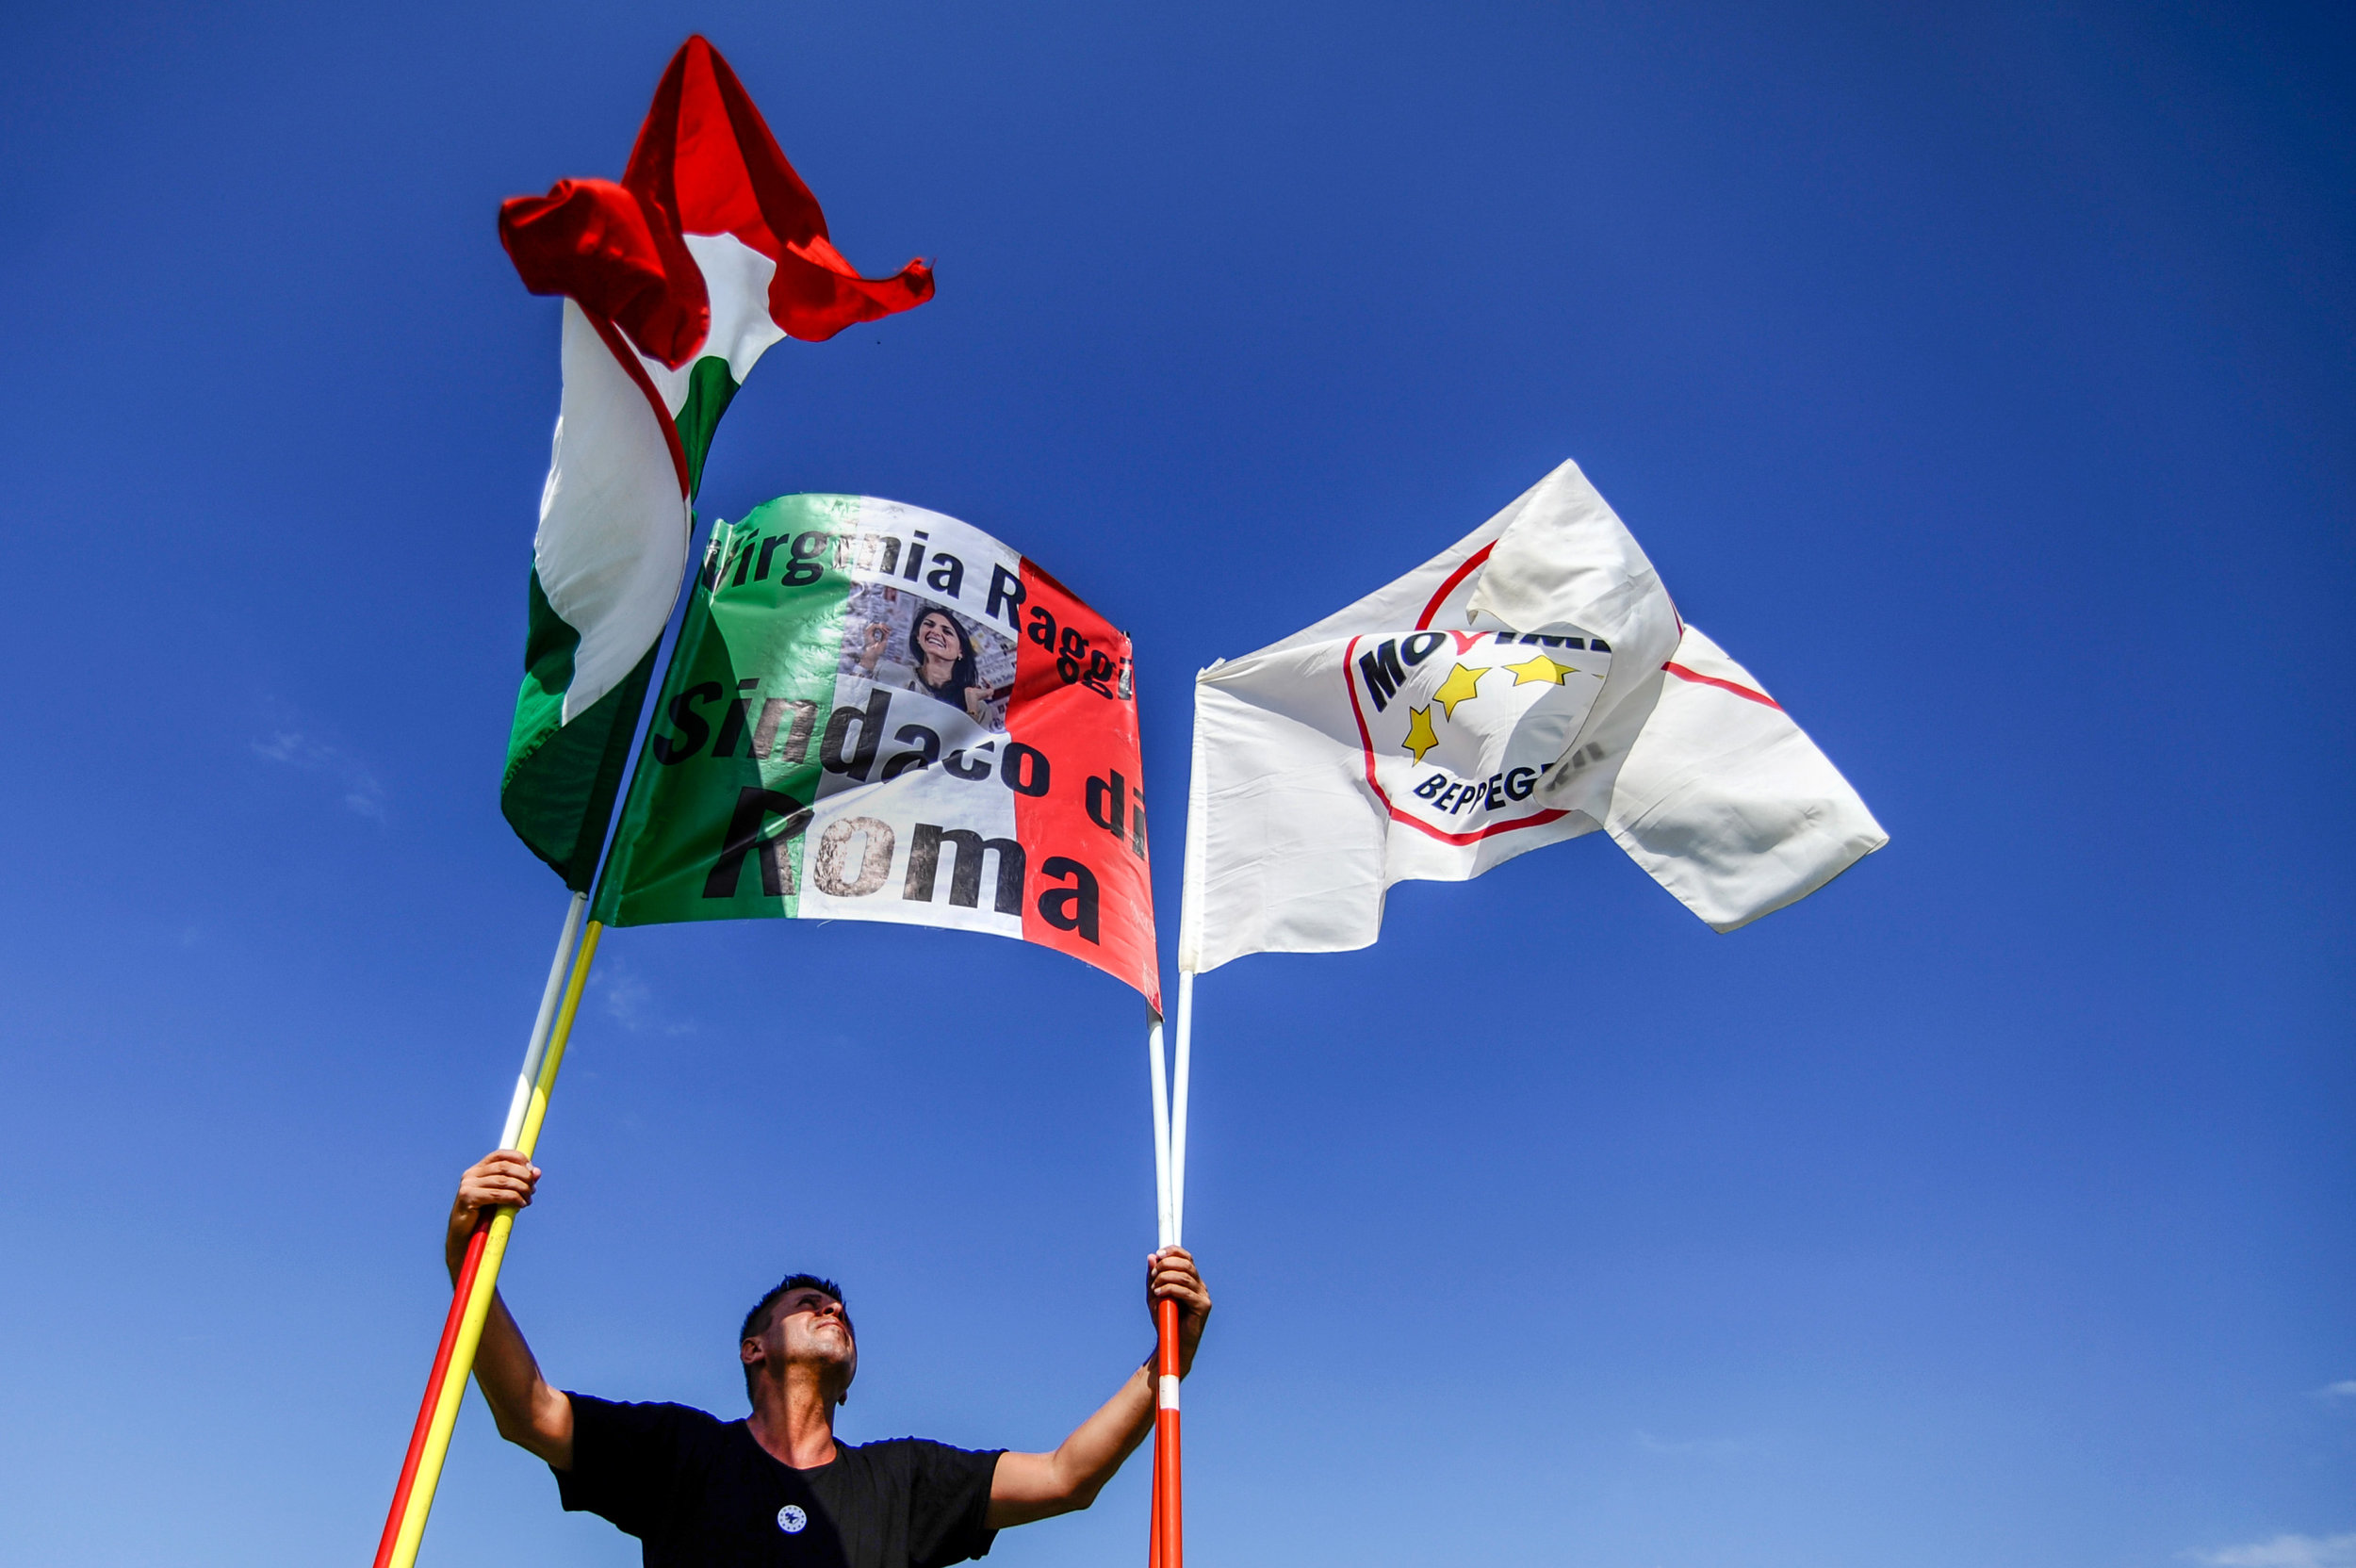 """A 5-Star Movement supporter holds a flag that reads: """"Virginia Raggi Mayor of Rome"""" during a rally in Palermo, southern Italy, September 24, 2016."""